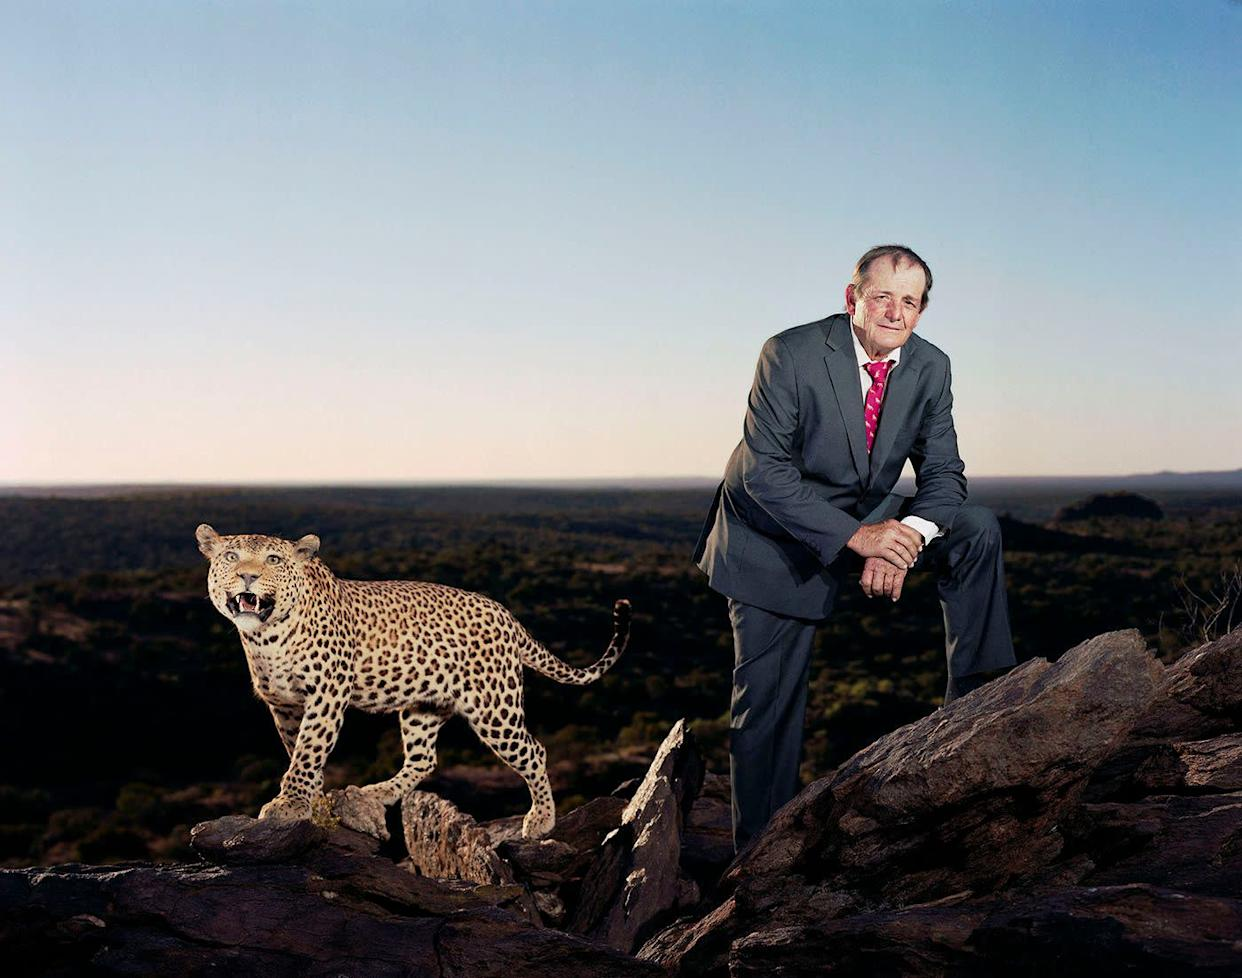 Walter Sibold and full-mounted leopard.